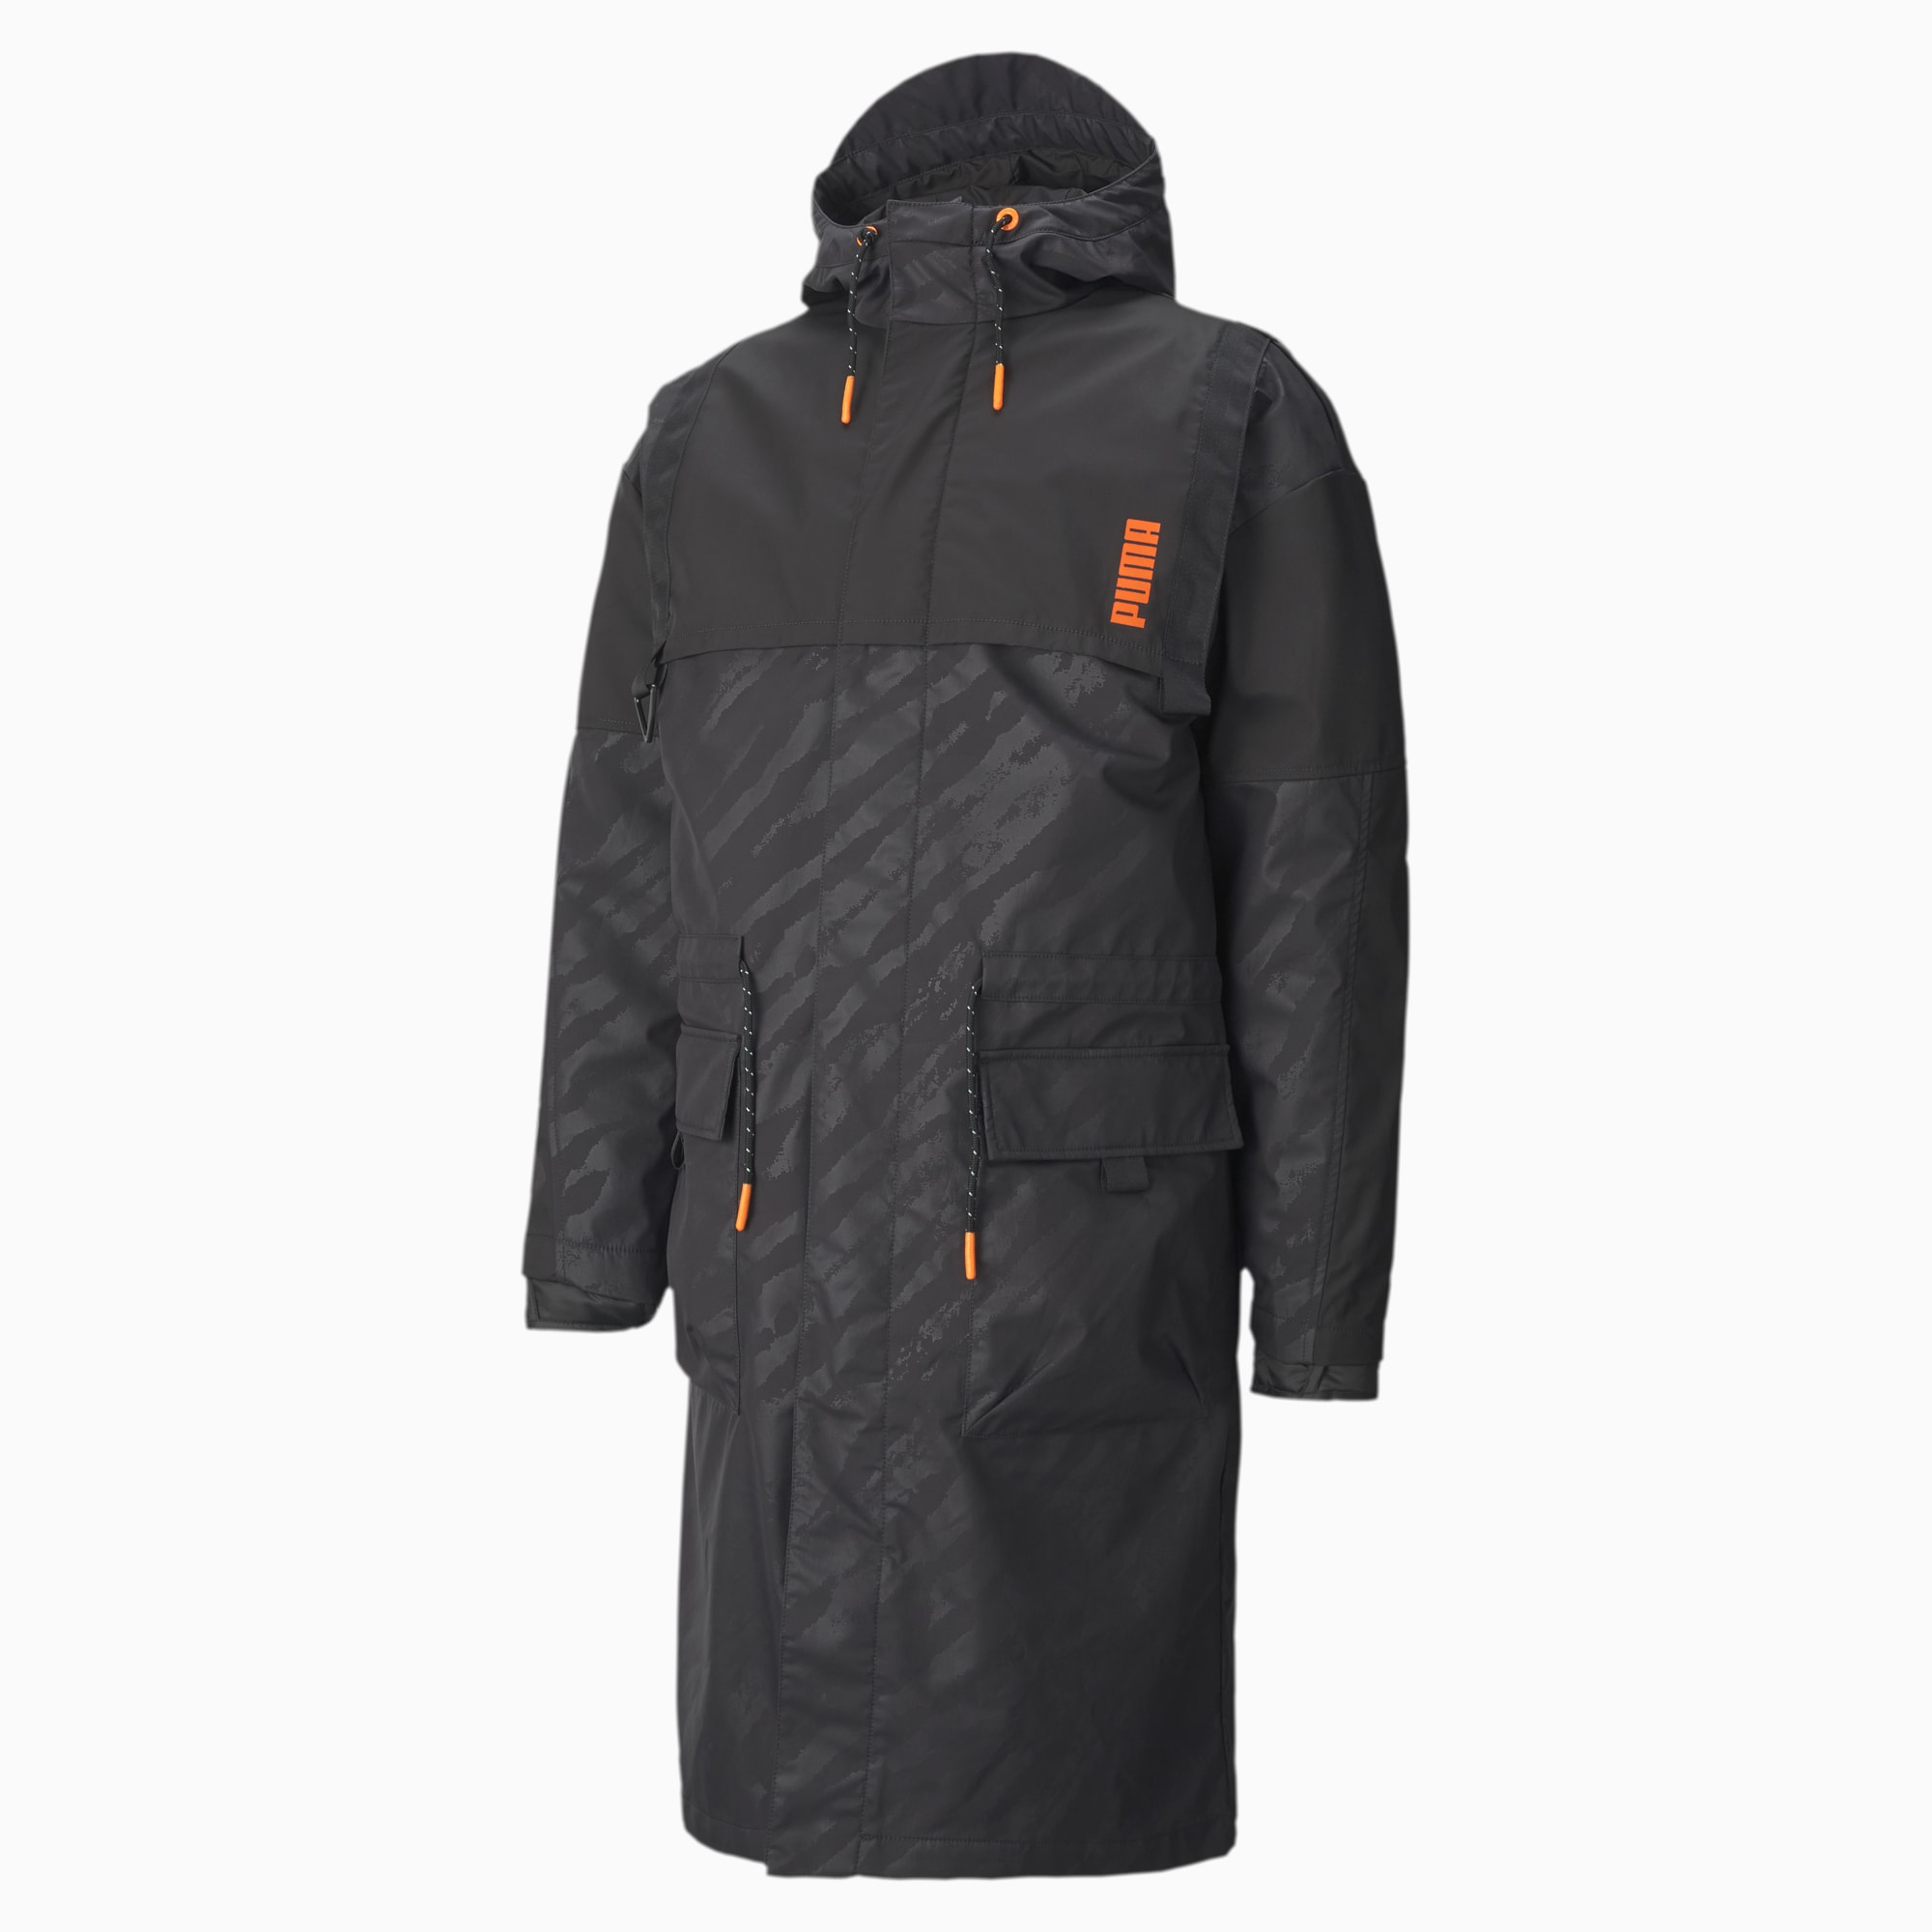 PUMA x CENTRAL SAINT MARTINS Hooded 2 in 1 Jacket, Puma Black, extralarge